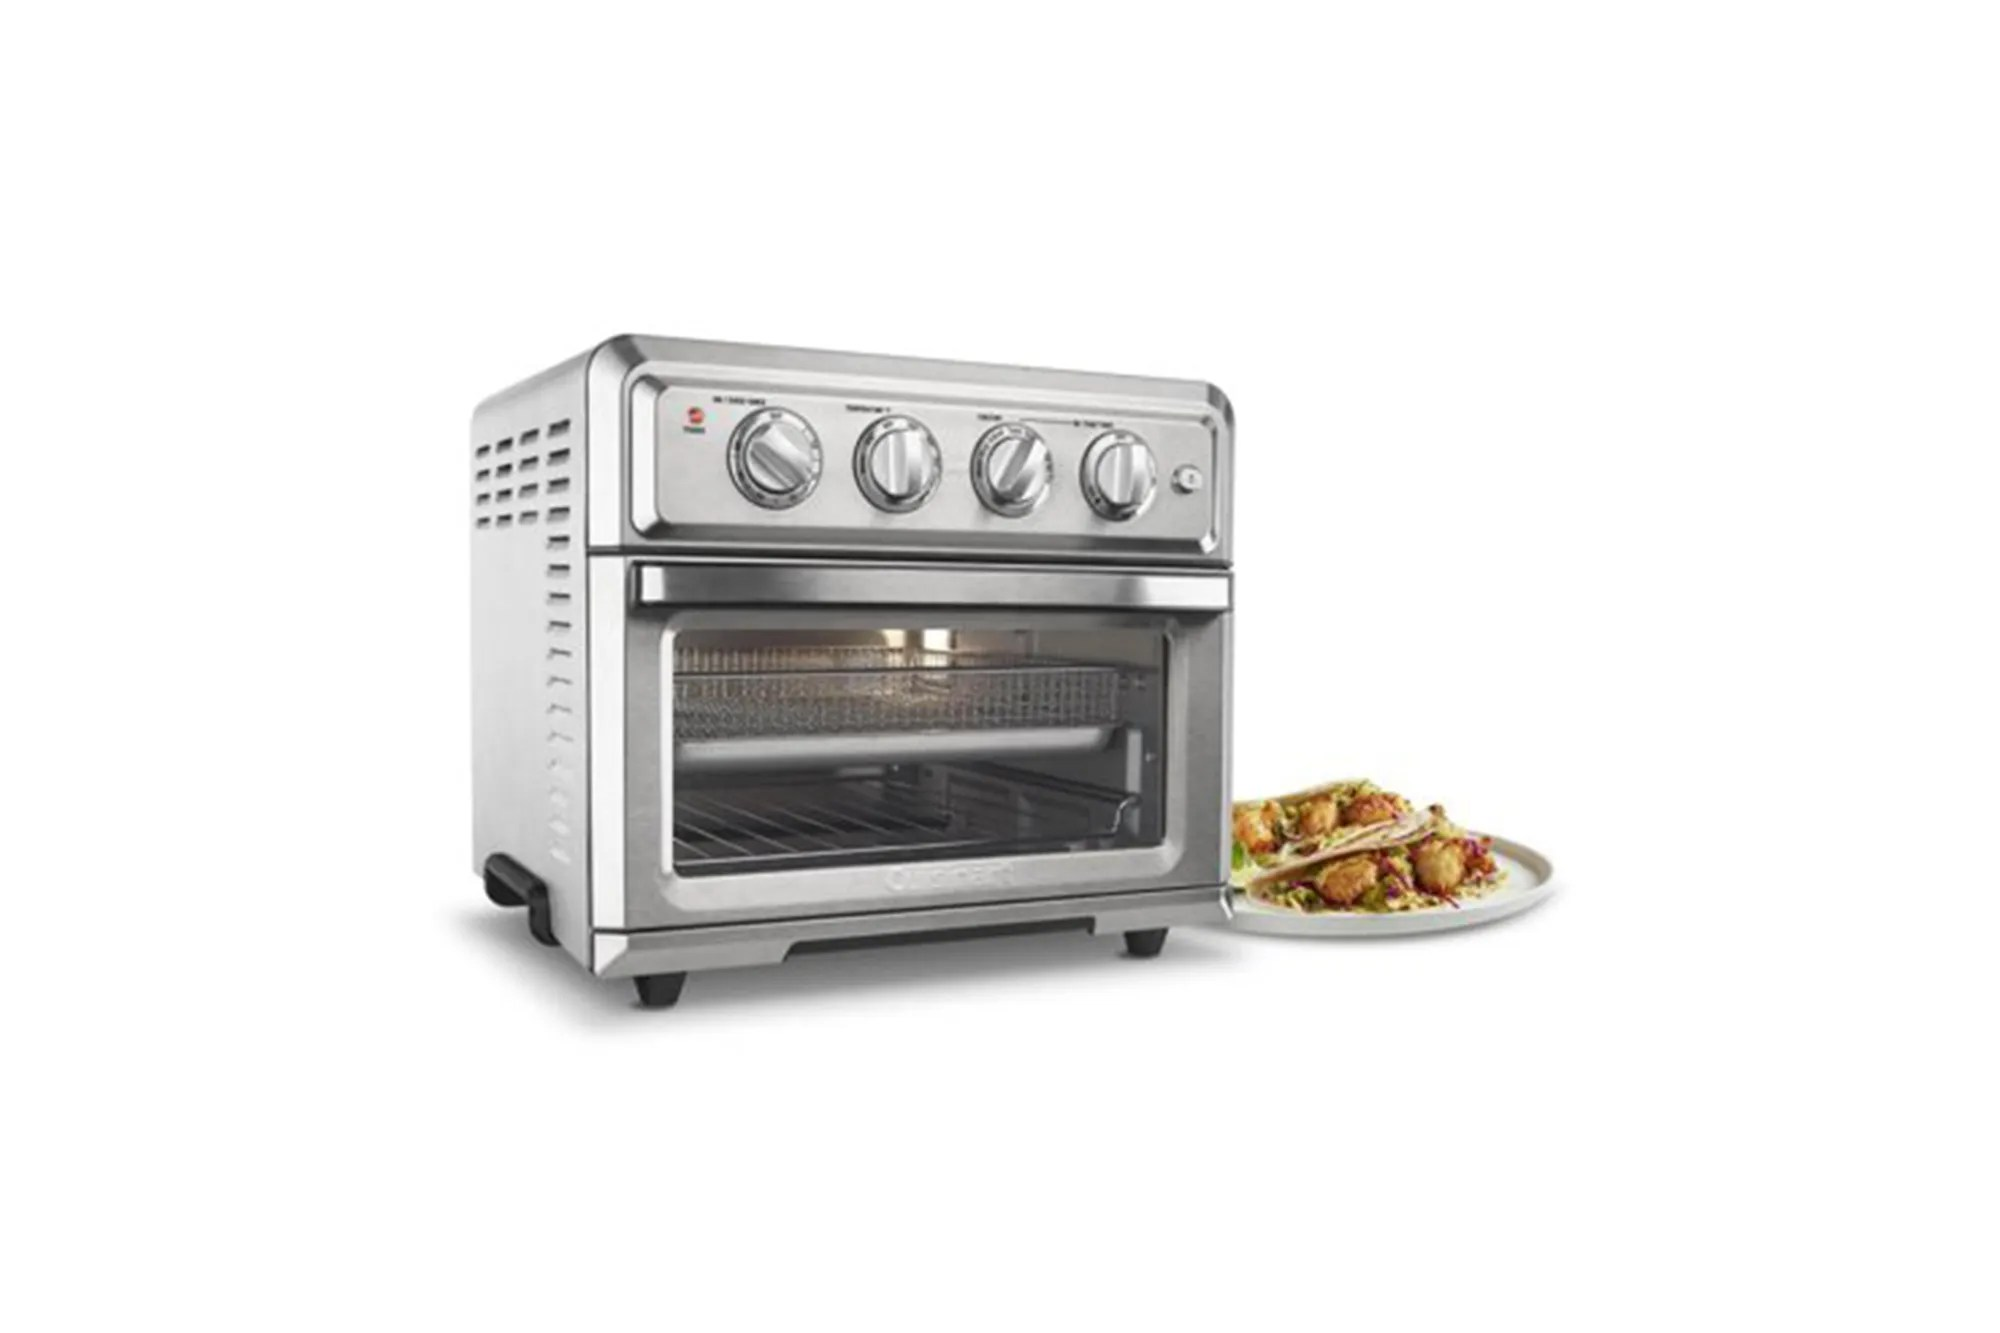 Cuisinart Air Fryer Oven The Best Air Fryer Is Small Cheap And Makes All Your